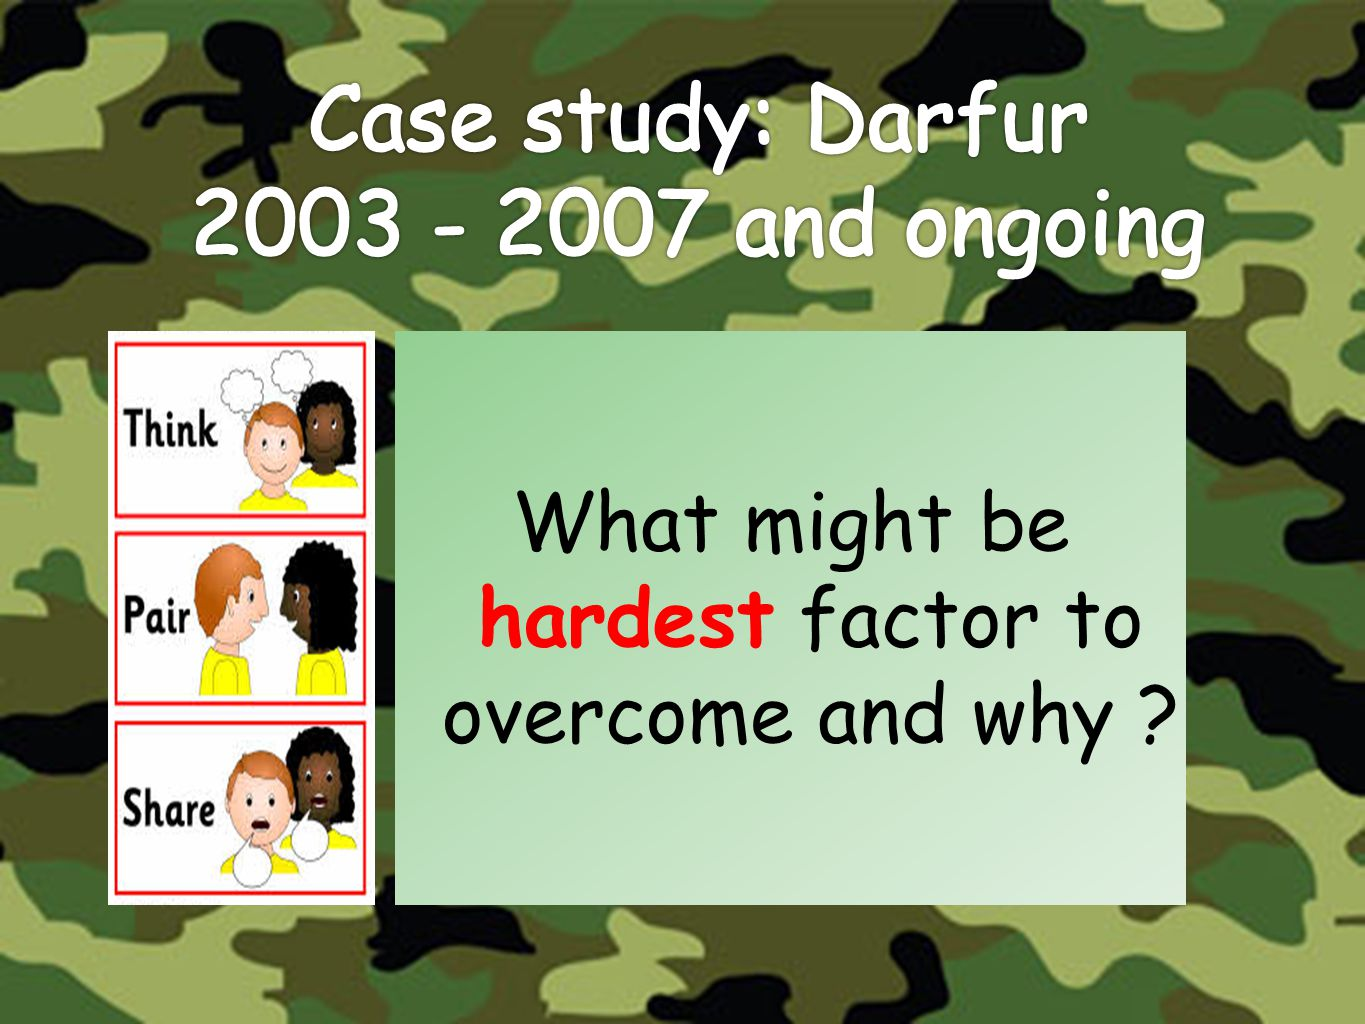 Case study: Darfur 2003 - 2007 and ongoing